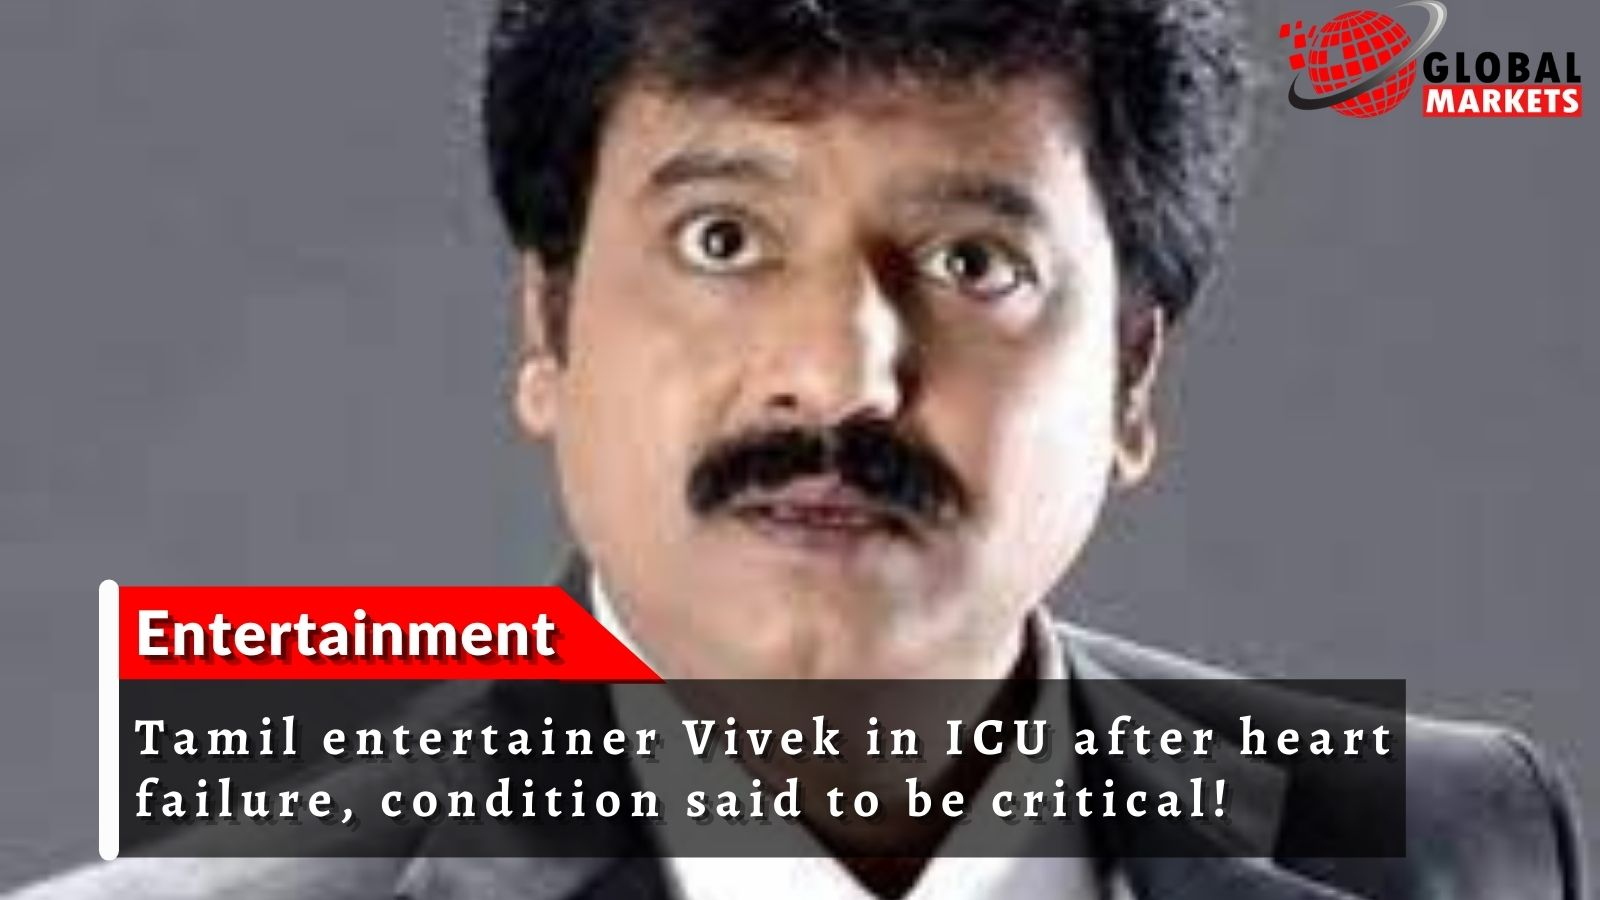 Tamil entertainer Vivek in ICU after heart failure, condition said to be critical!